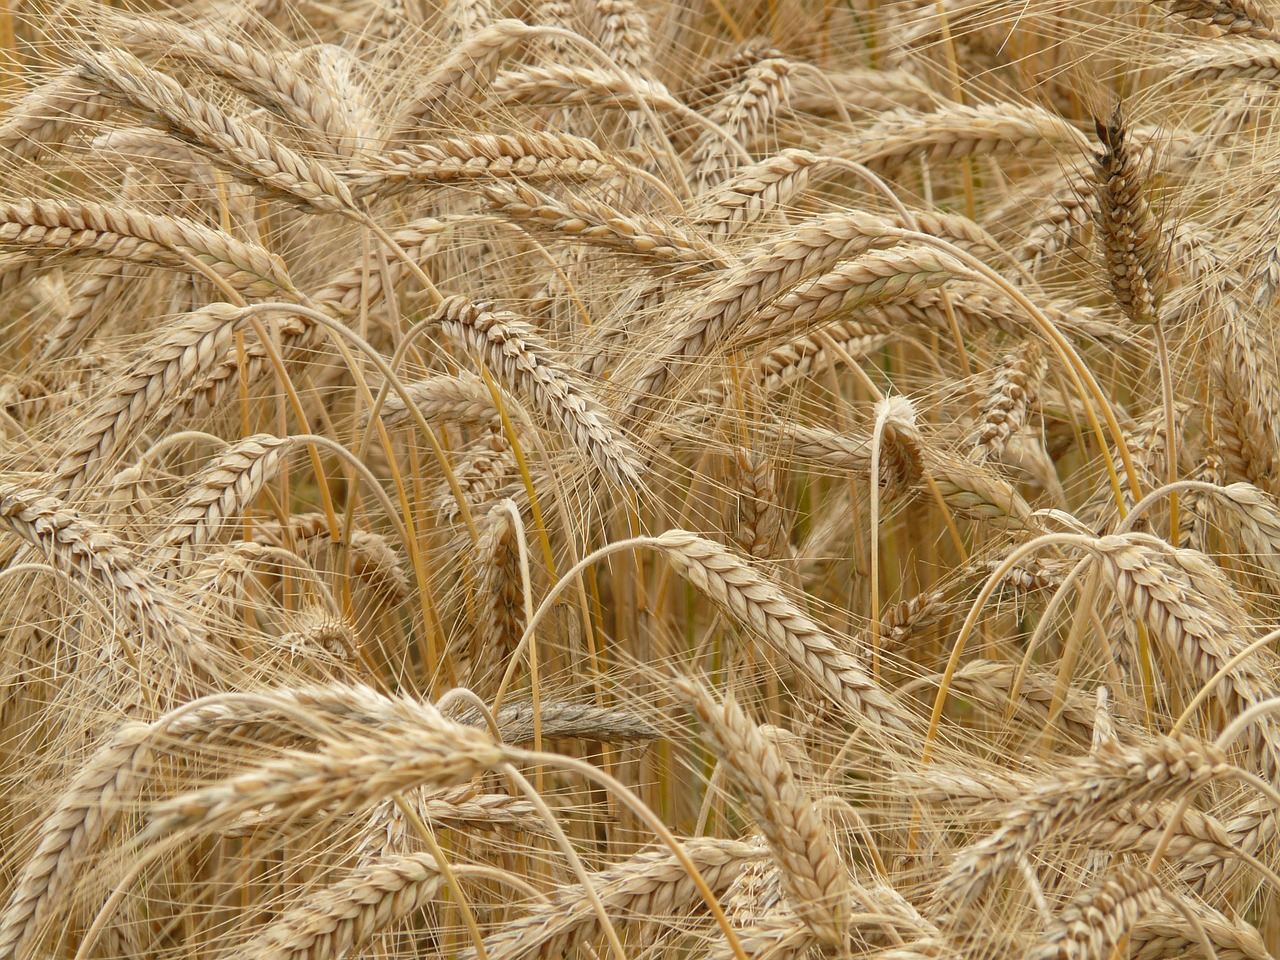 spike rye cereals free photo